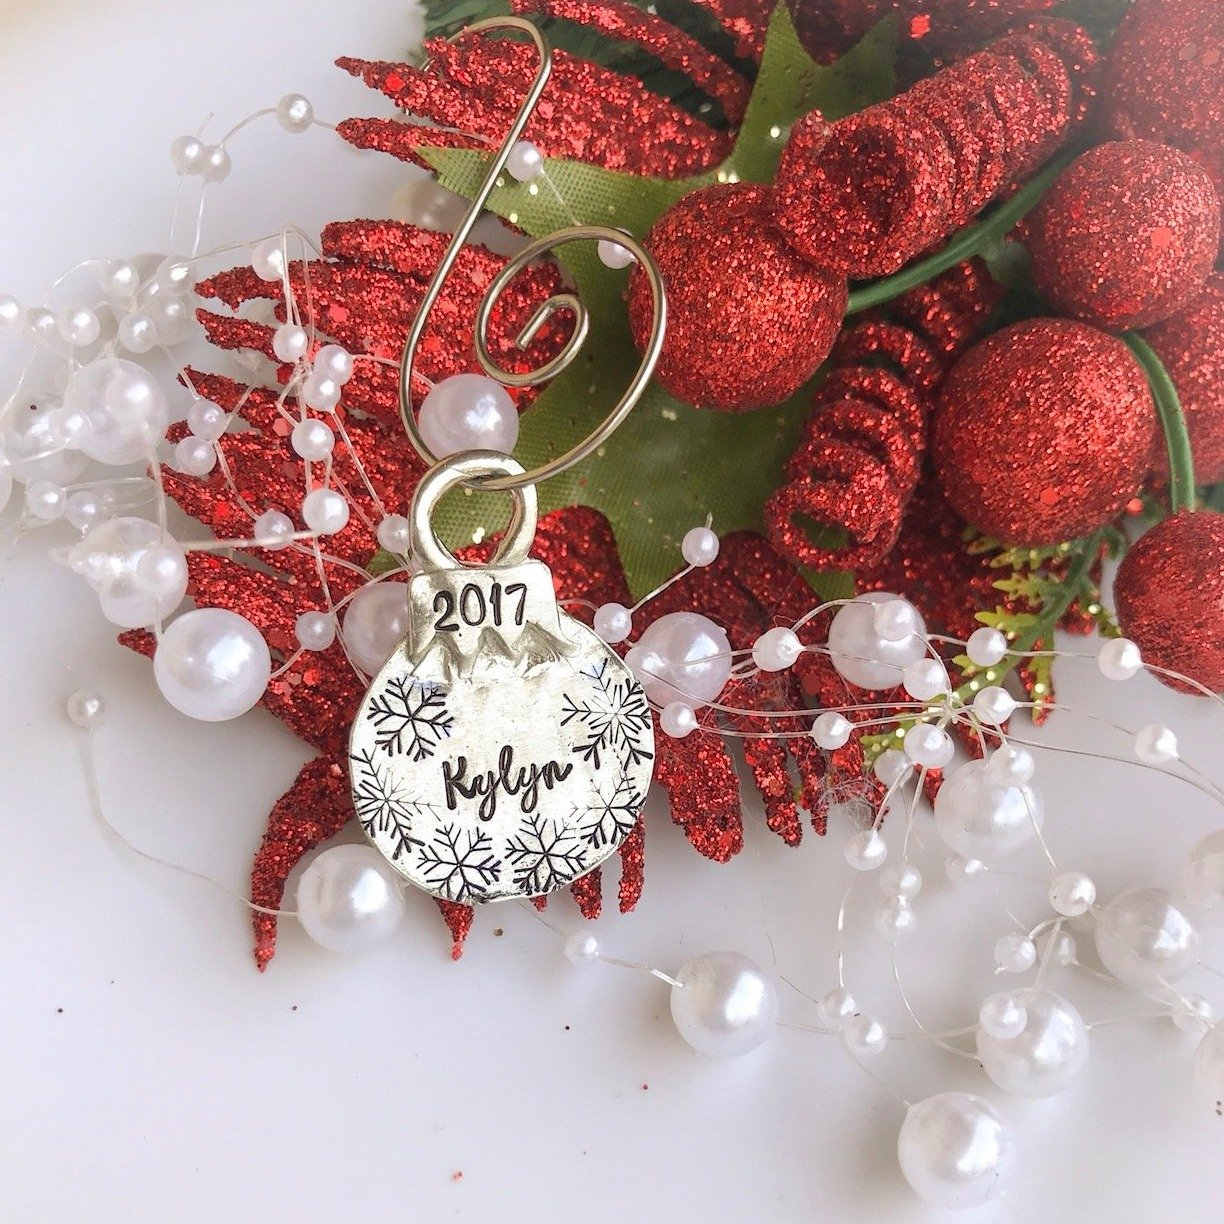 Christmas Ball Ornaments.Pewter Small Christmas Ball Ornament Personalized Christmas Ornament Custom Kids Name Ornament